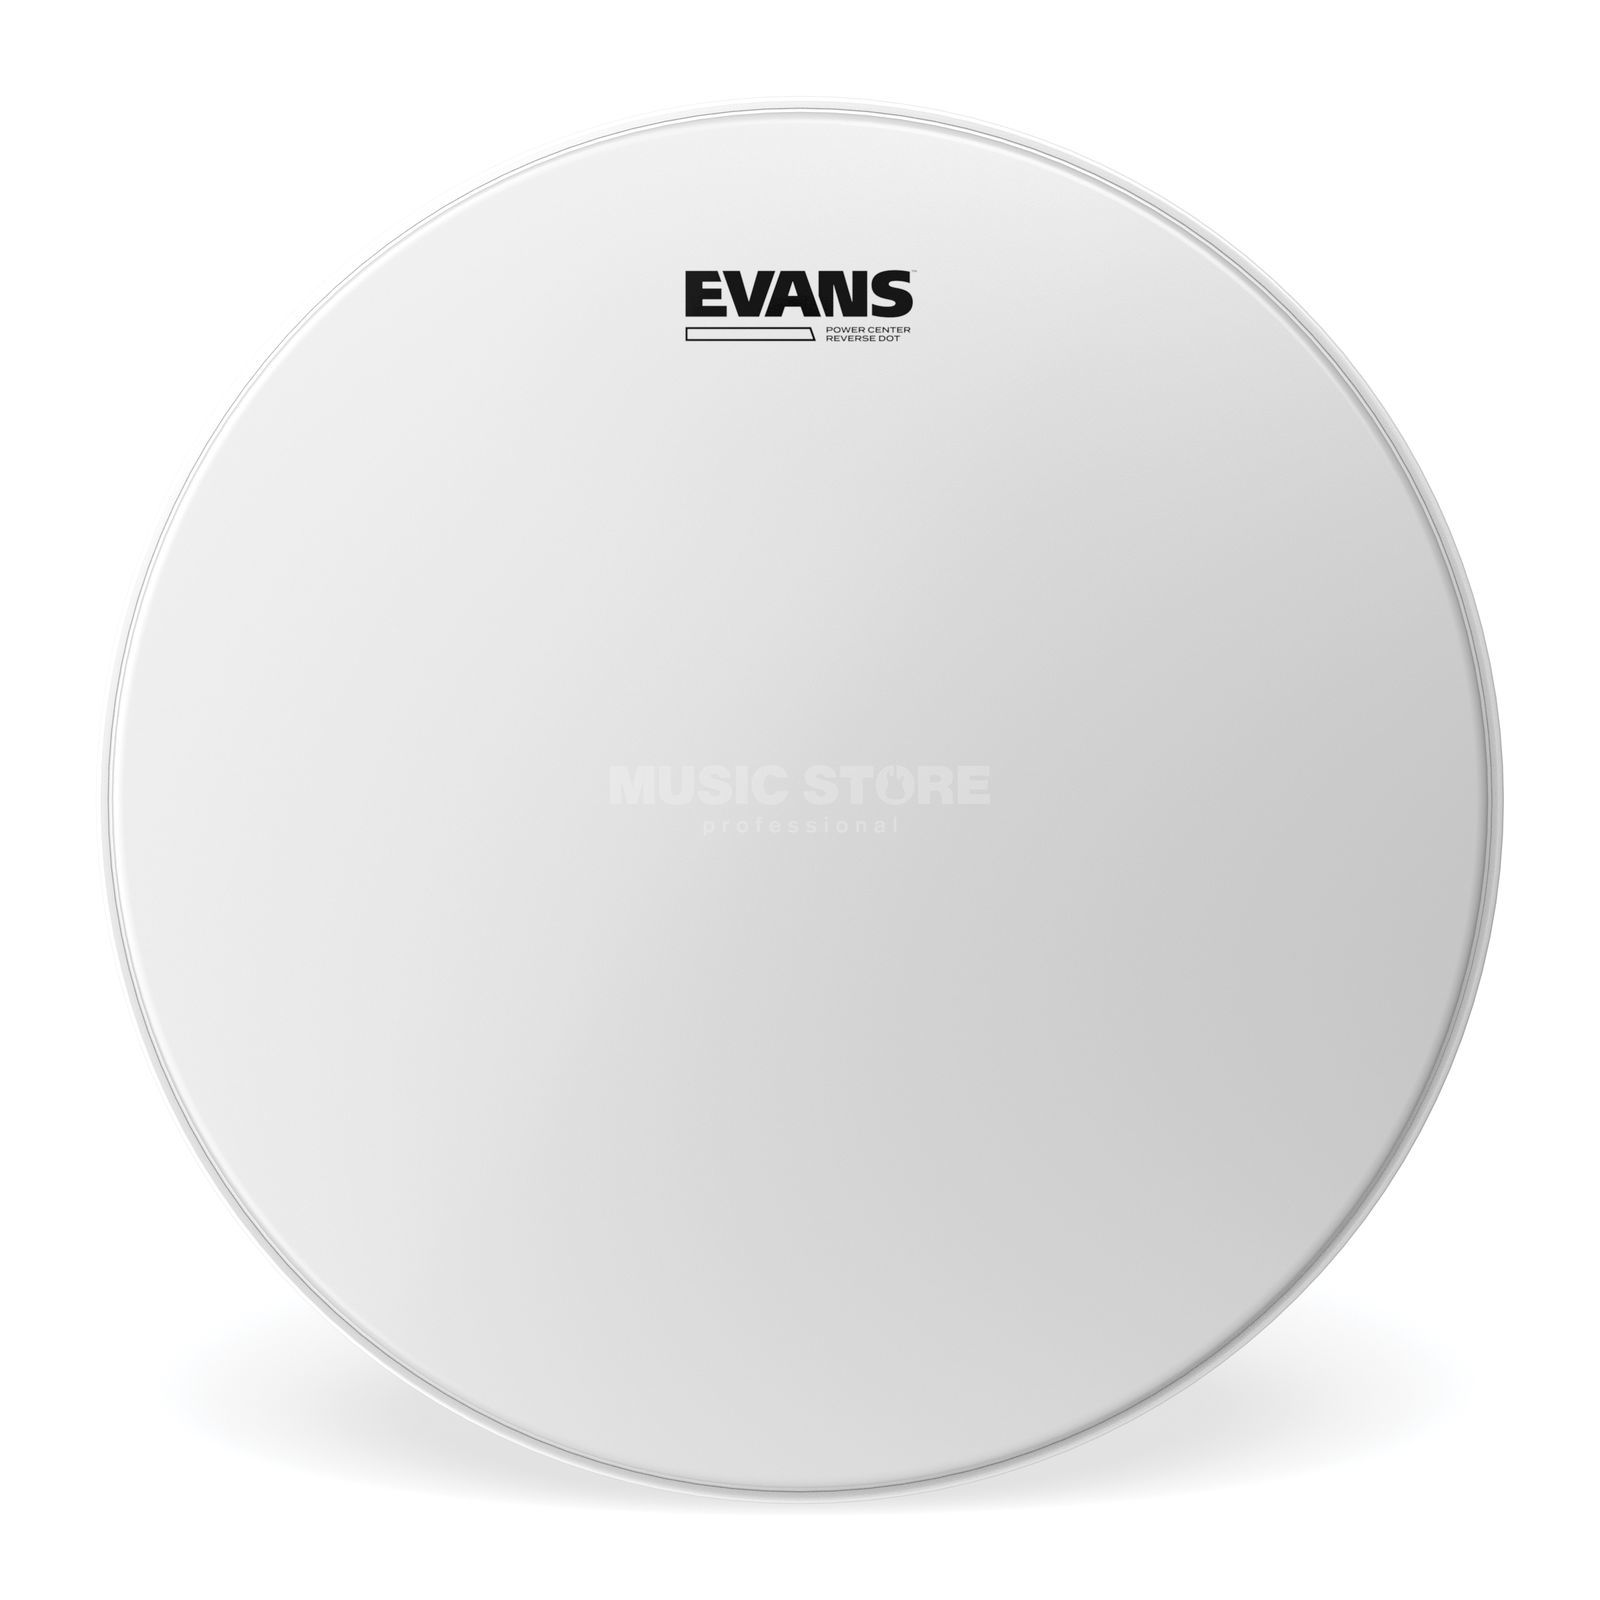 "Evans Power Center 13"", B13G1RD, Reverse Dot, Snare Batter Produktbillede"